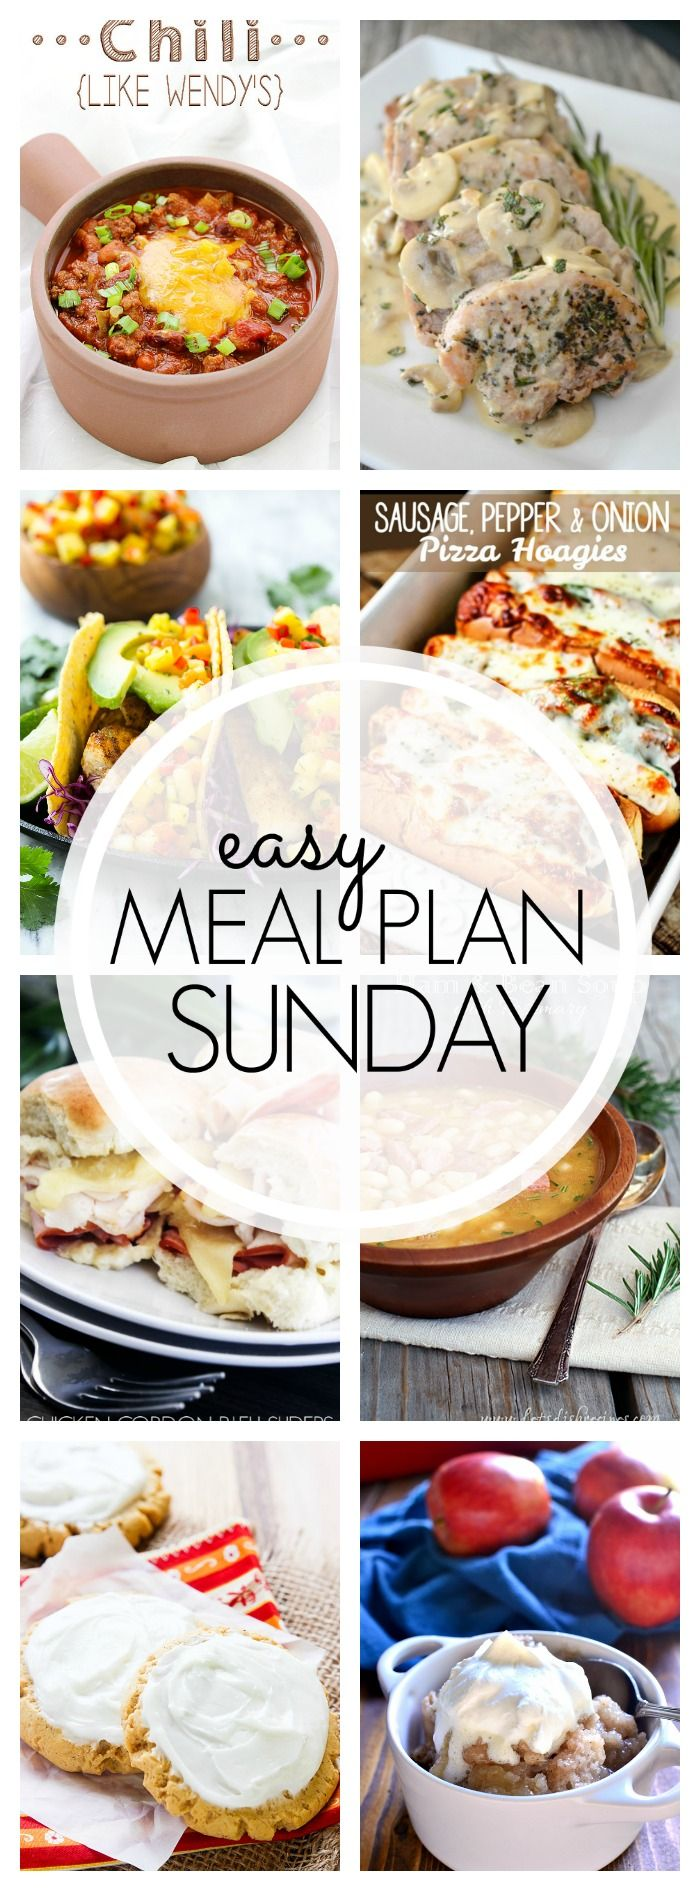 With Easy Meal Plan Sunday Week 68 - six dinners, two desserts and a breakfast recipe will help you remove the guesswork from this week's meal planning.